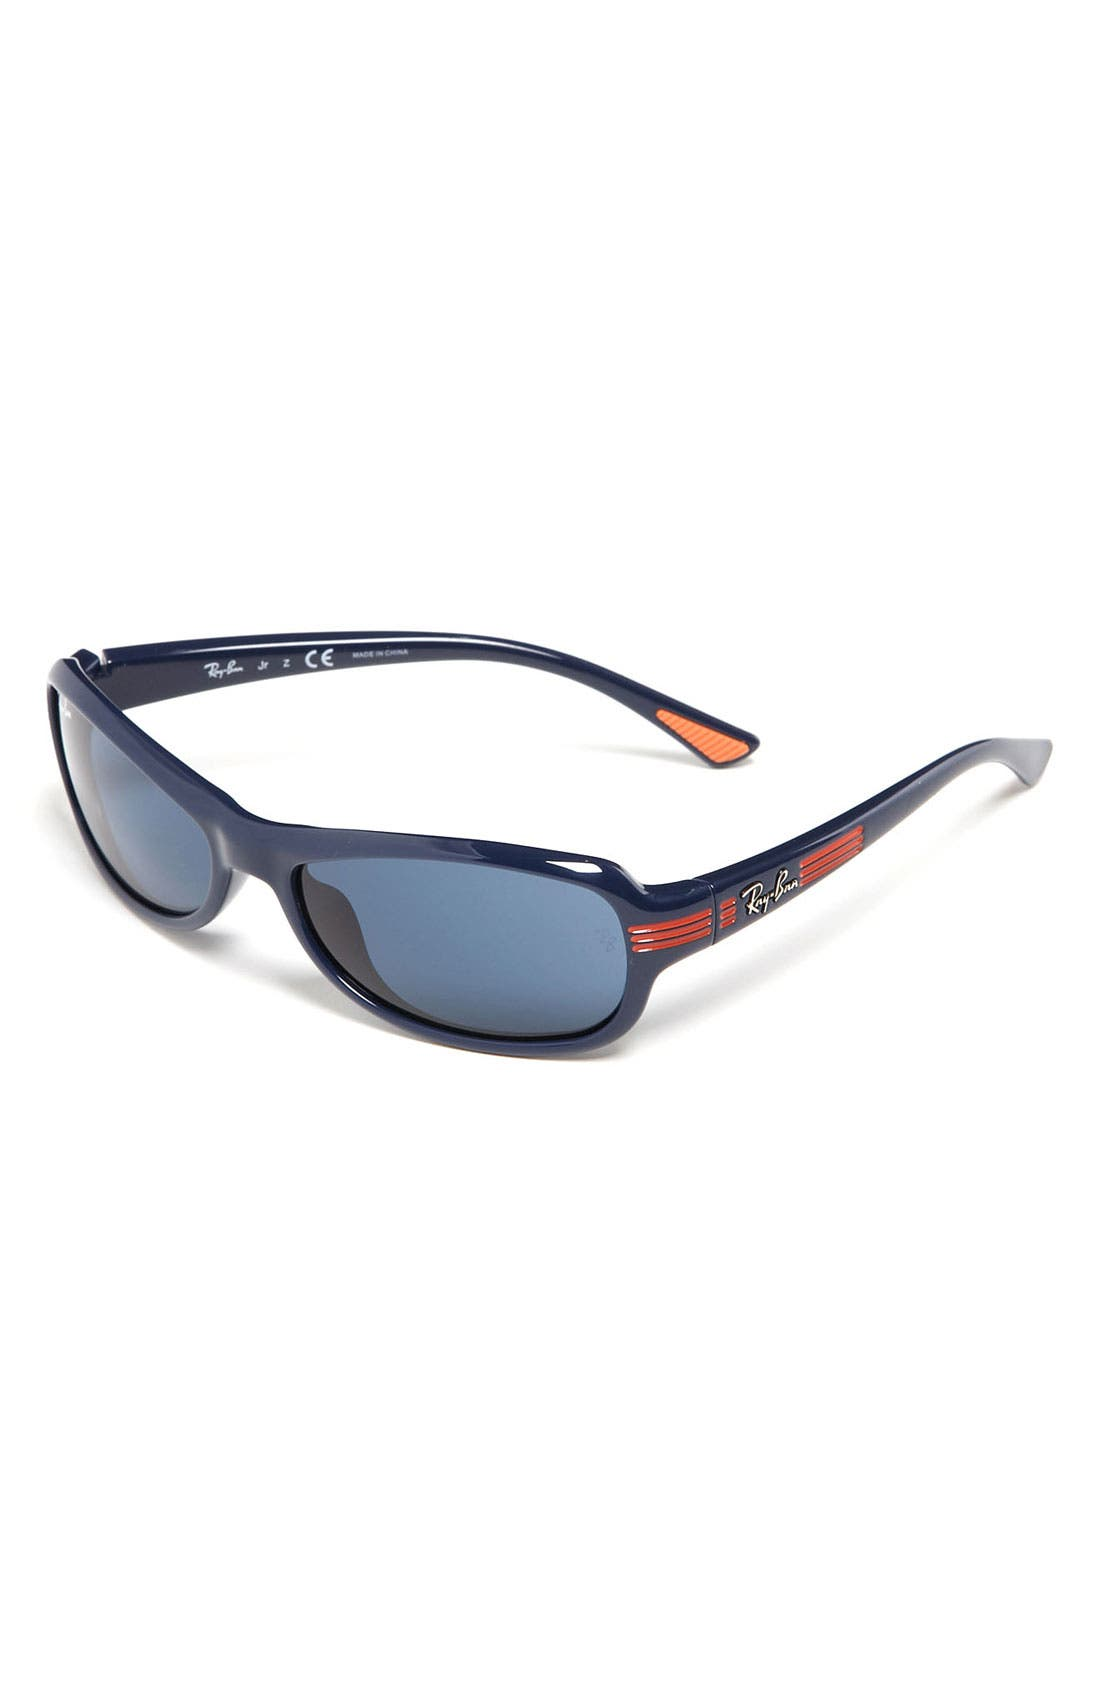 Alternate Image 1 Selected - Ray-Ban Sport 51mm Sunglasses (Big Boys)